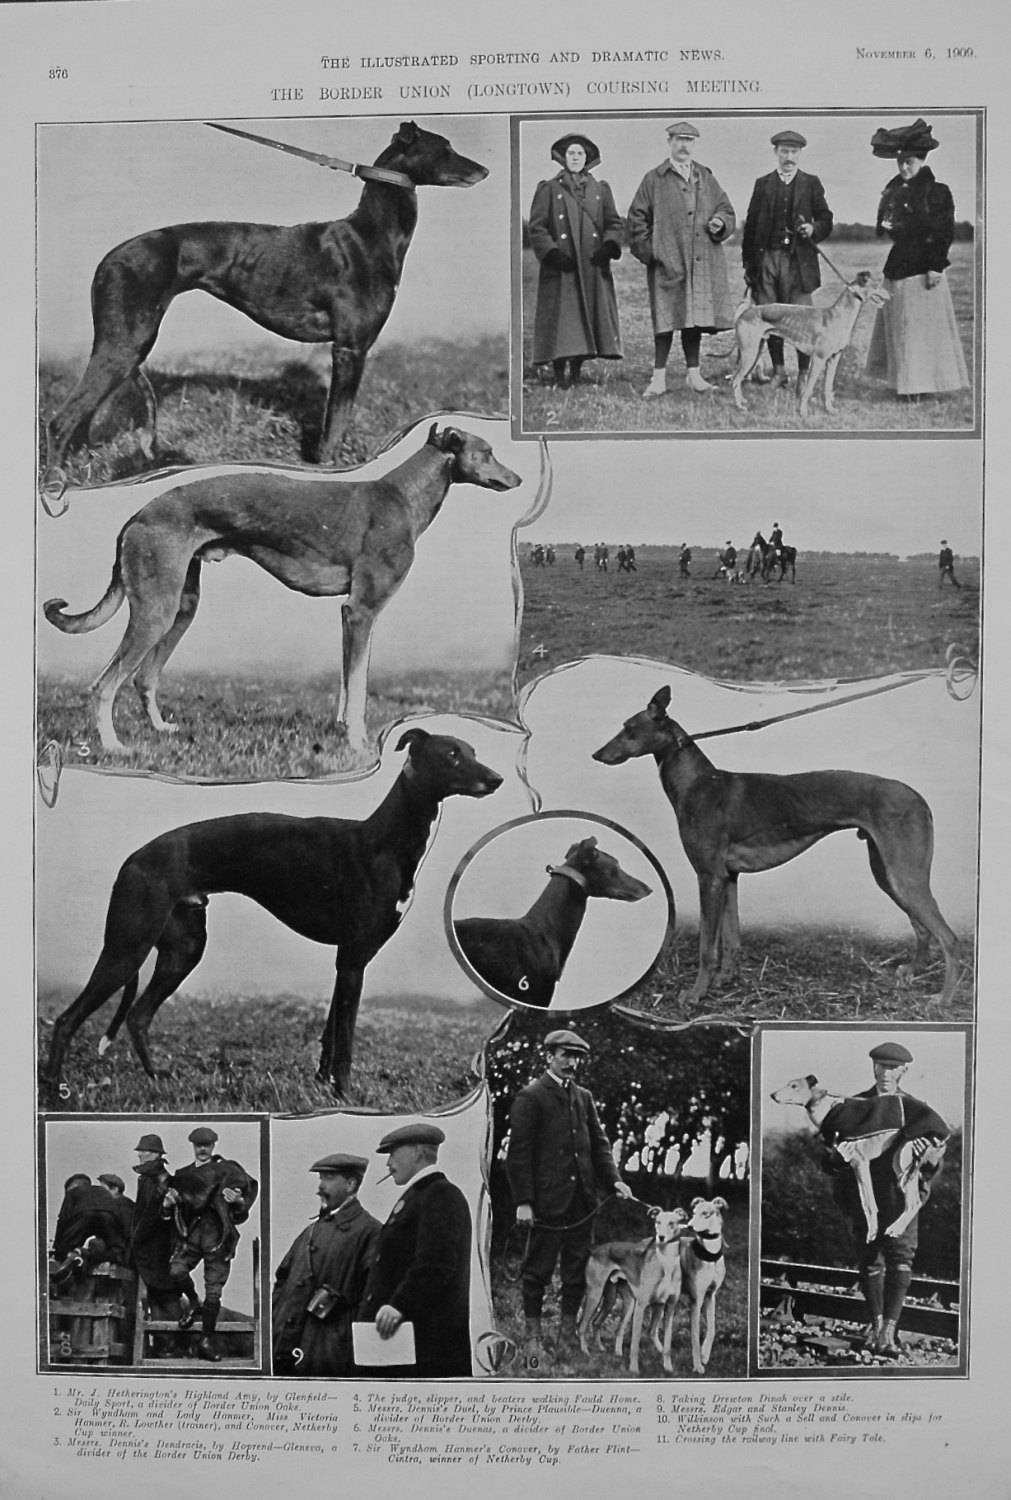 The Border Union (Longtown) Coursing Meeting. 1909